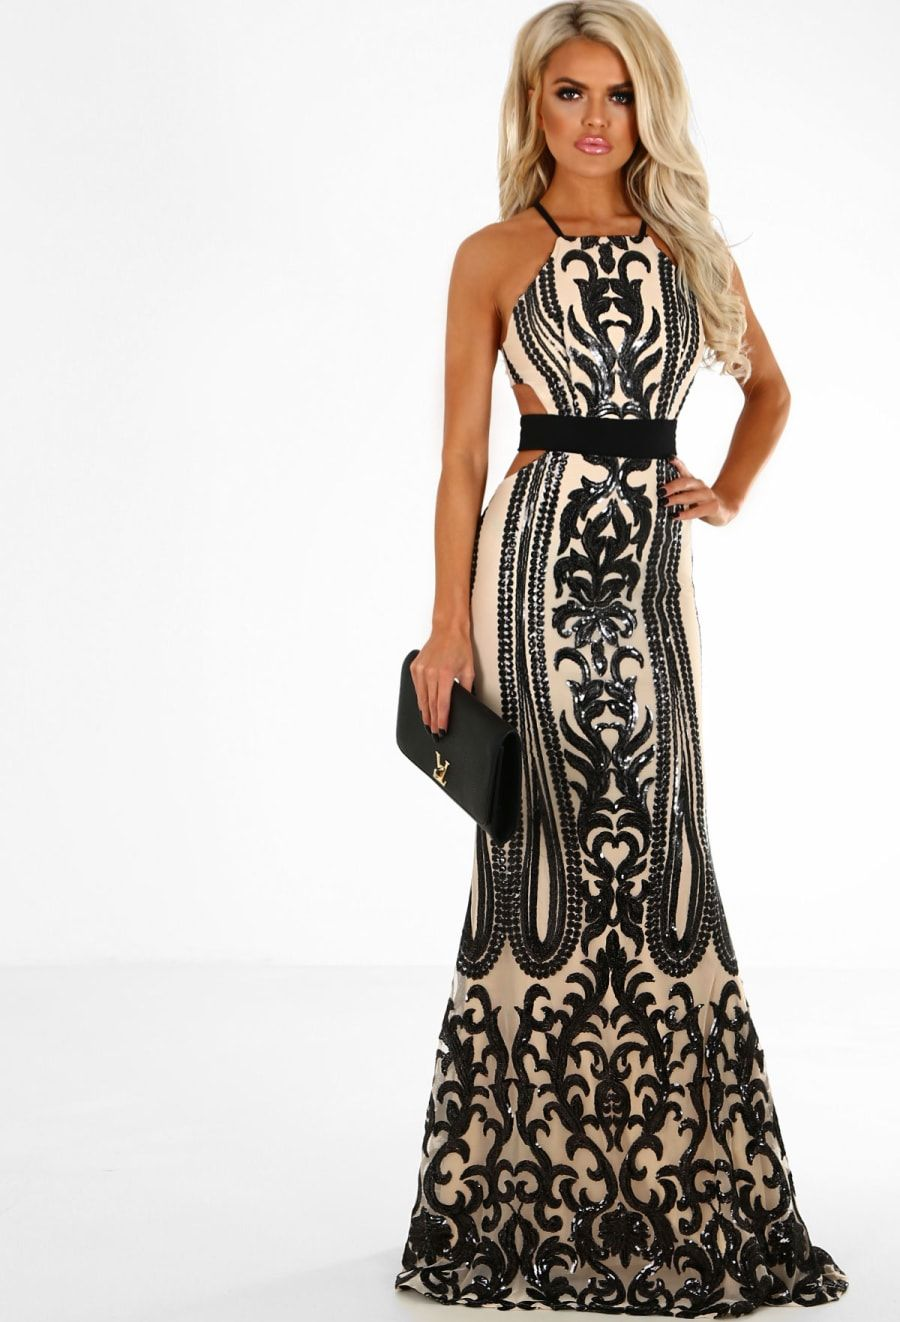 550b7f61eefd All A Dream Nude and Black Sequin Cut Out Maxi Dress - 16   formal ...